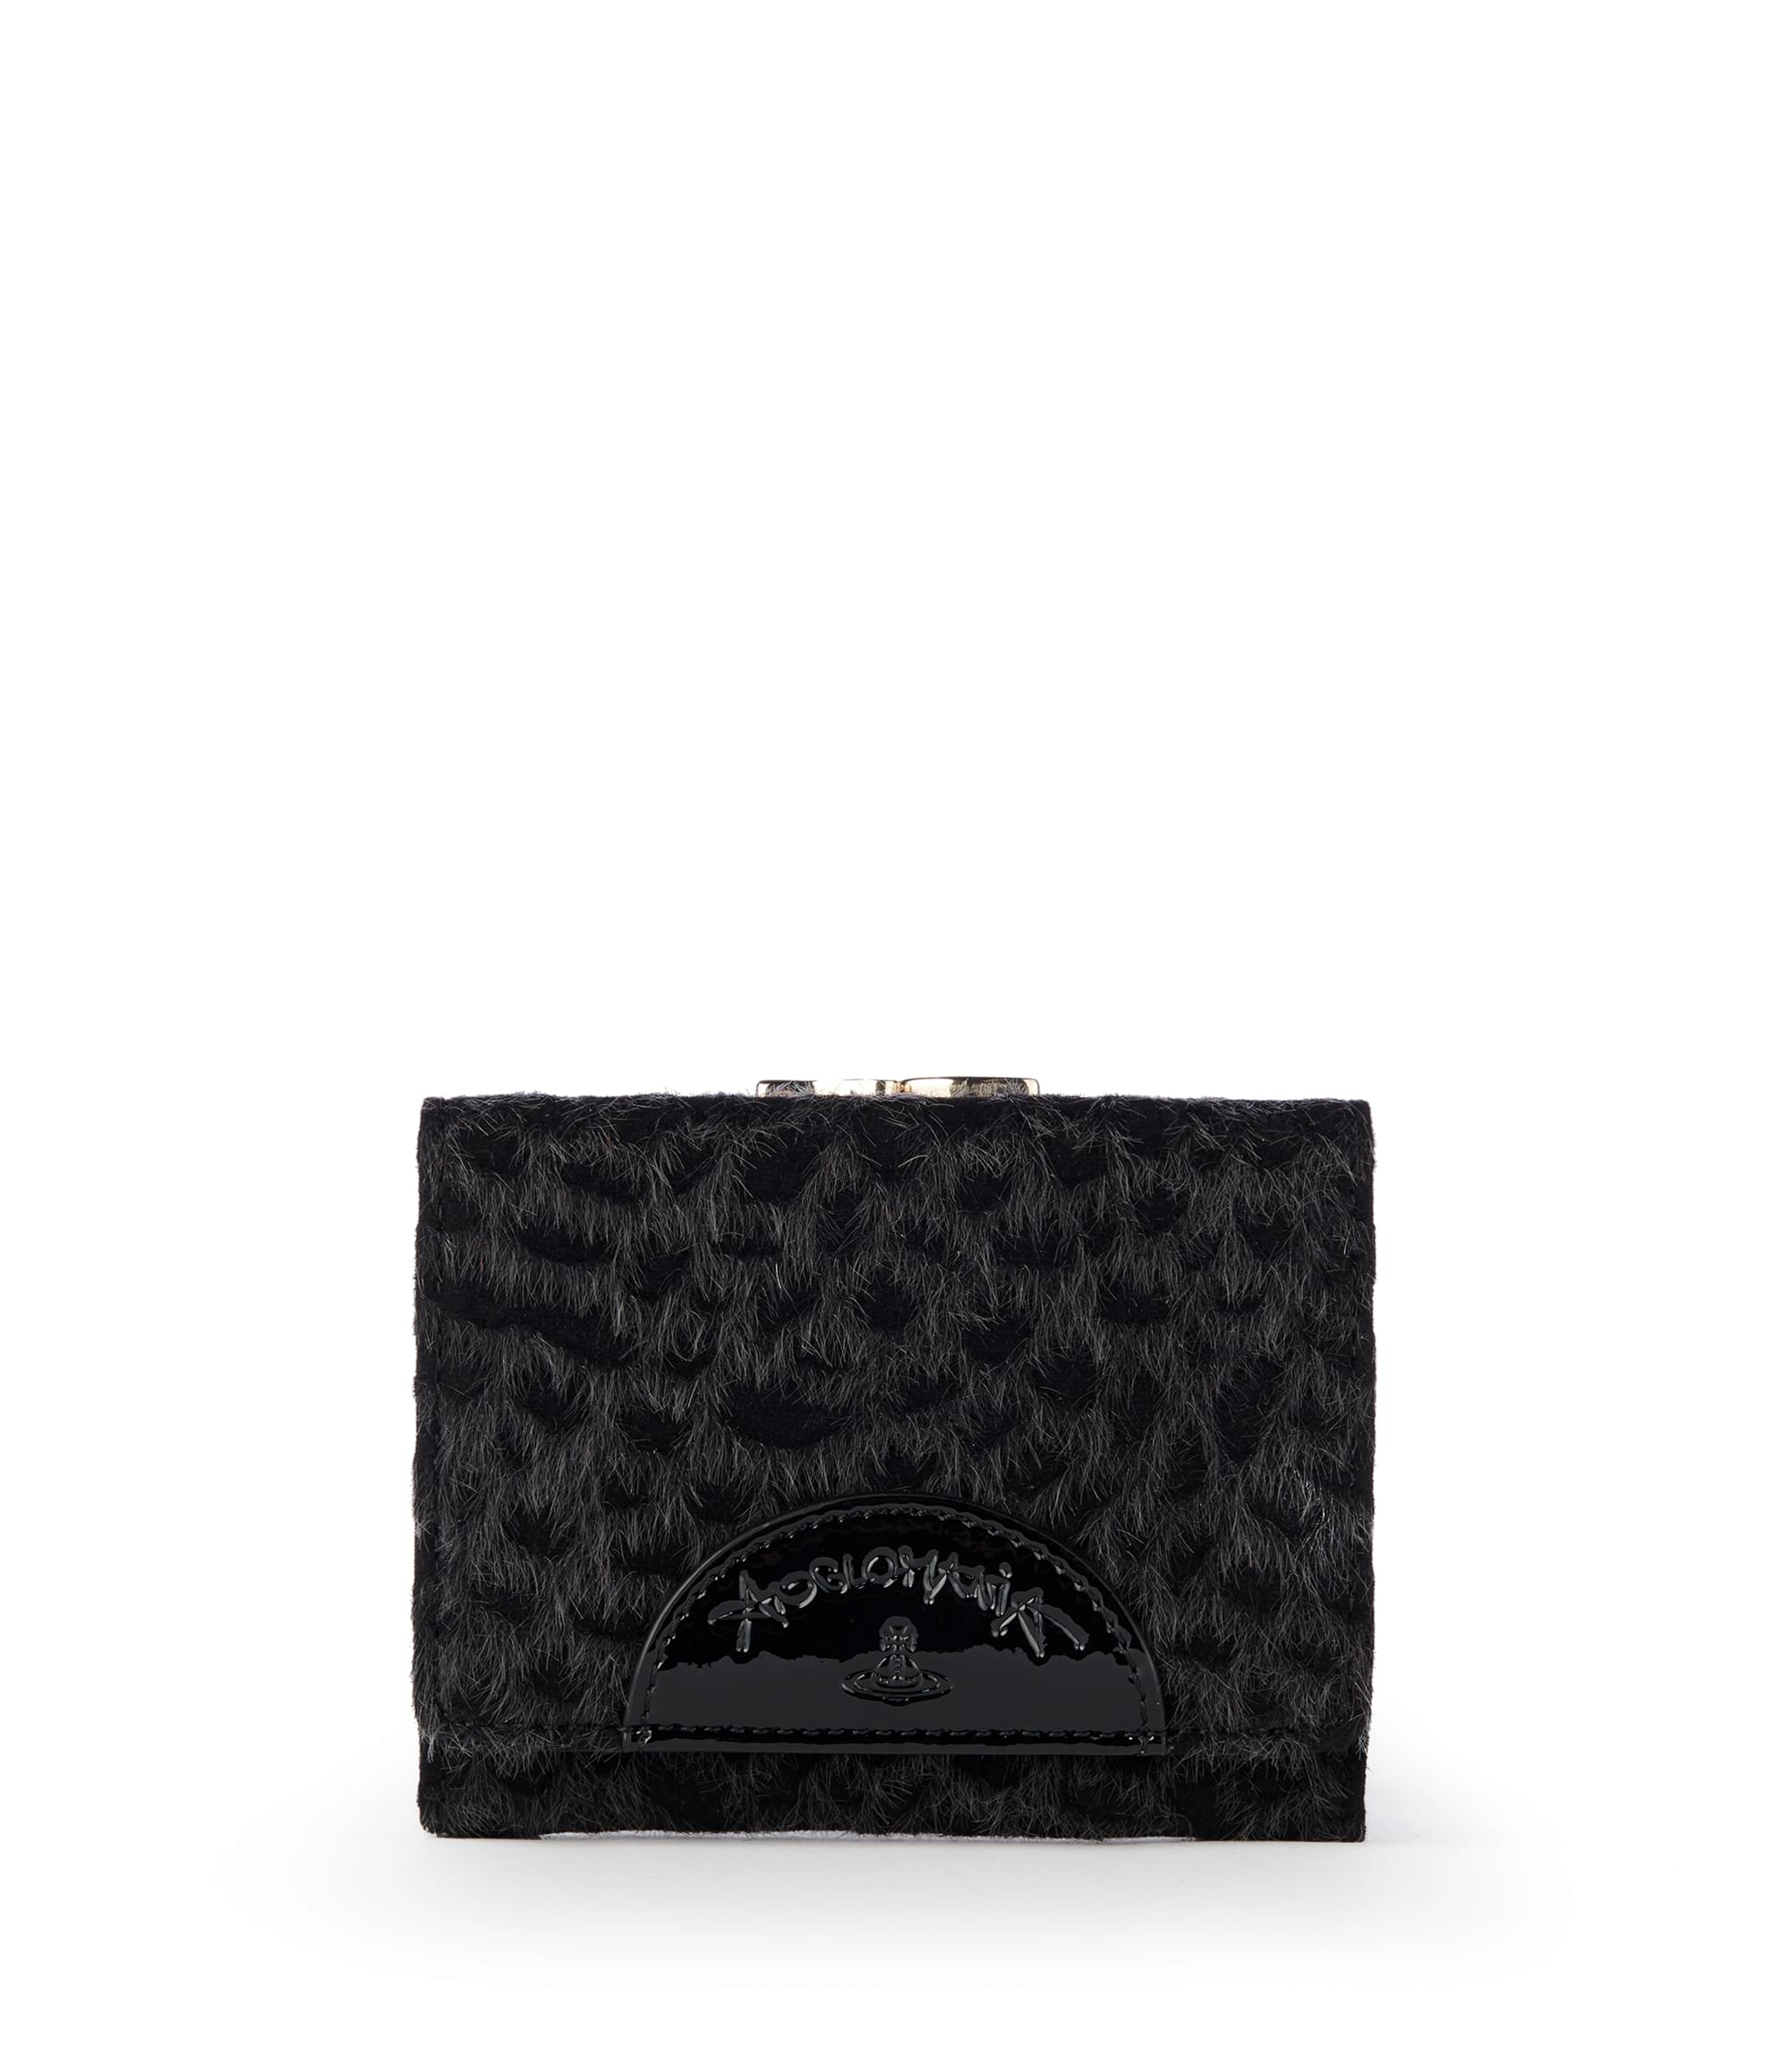 Vivienne Westwood Cheetah Wallet With Coin Pocket 51010001 Black